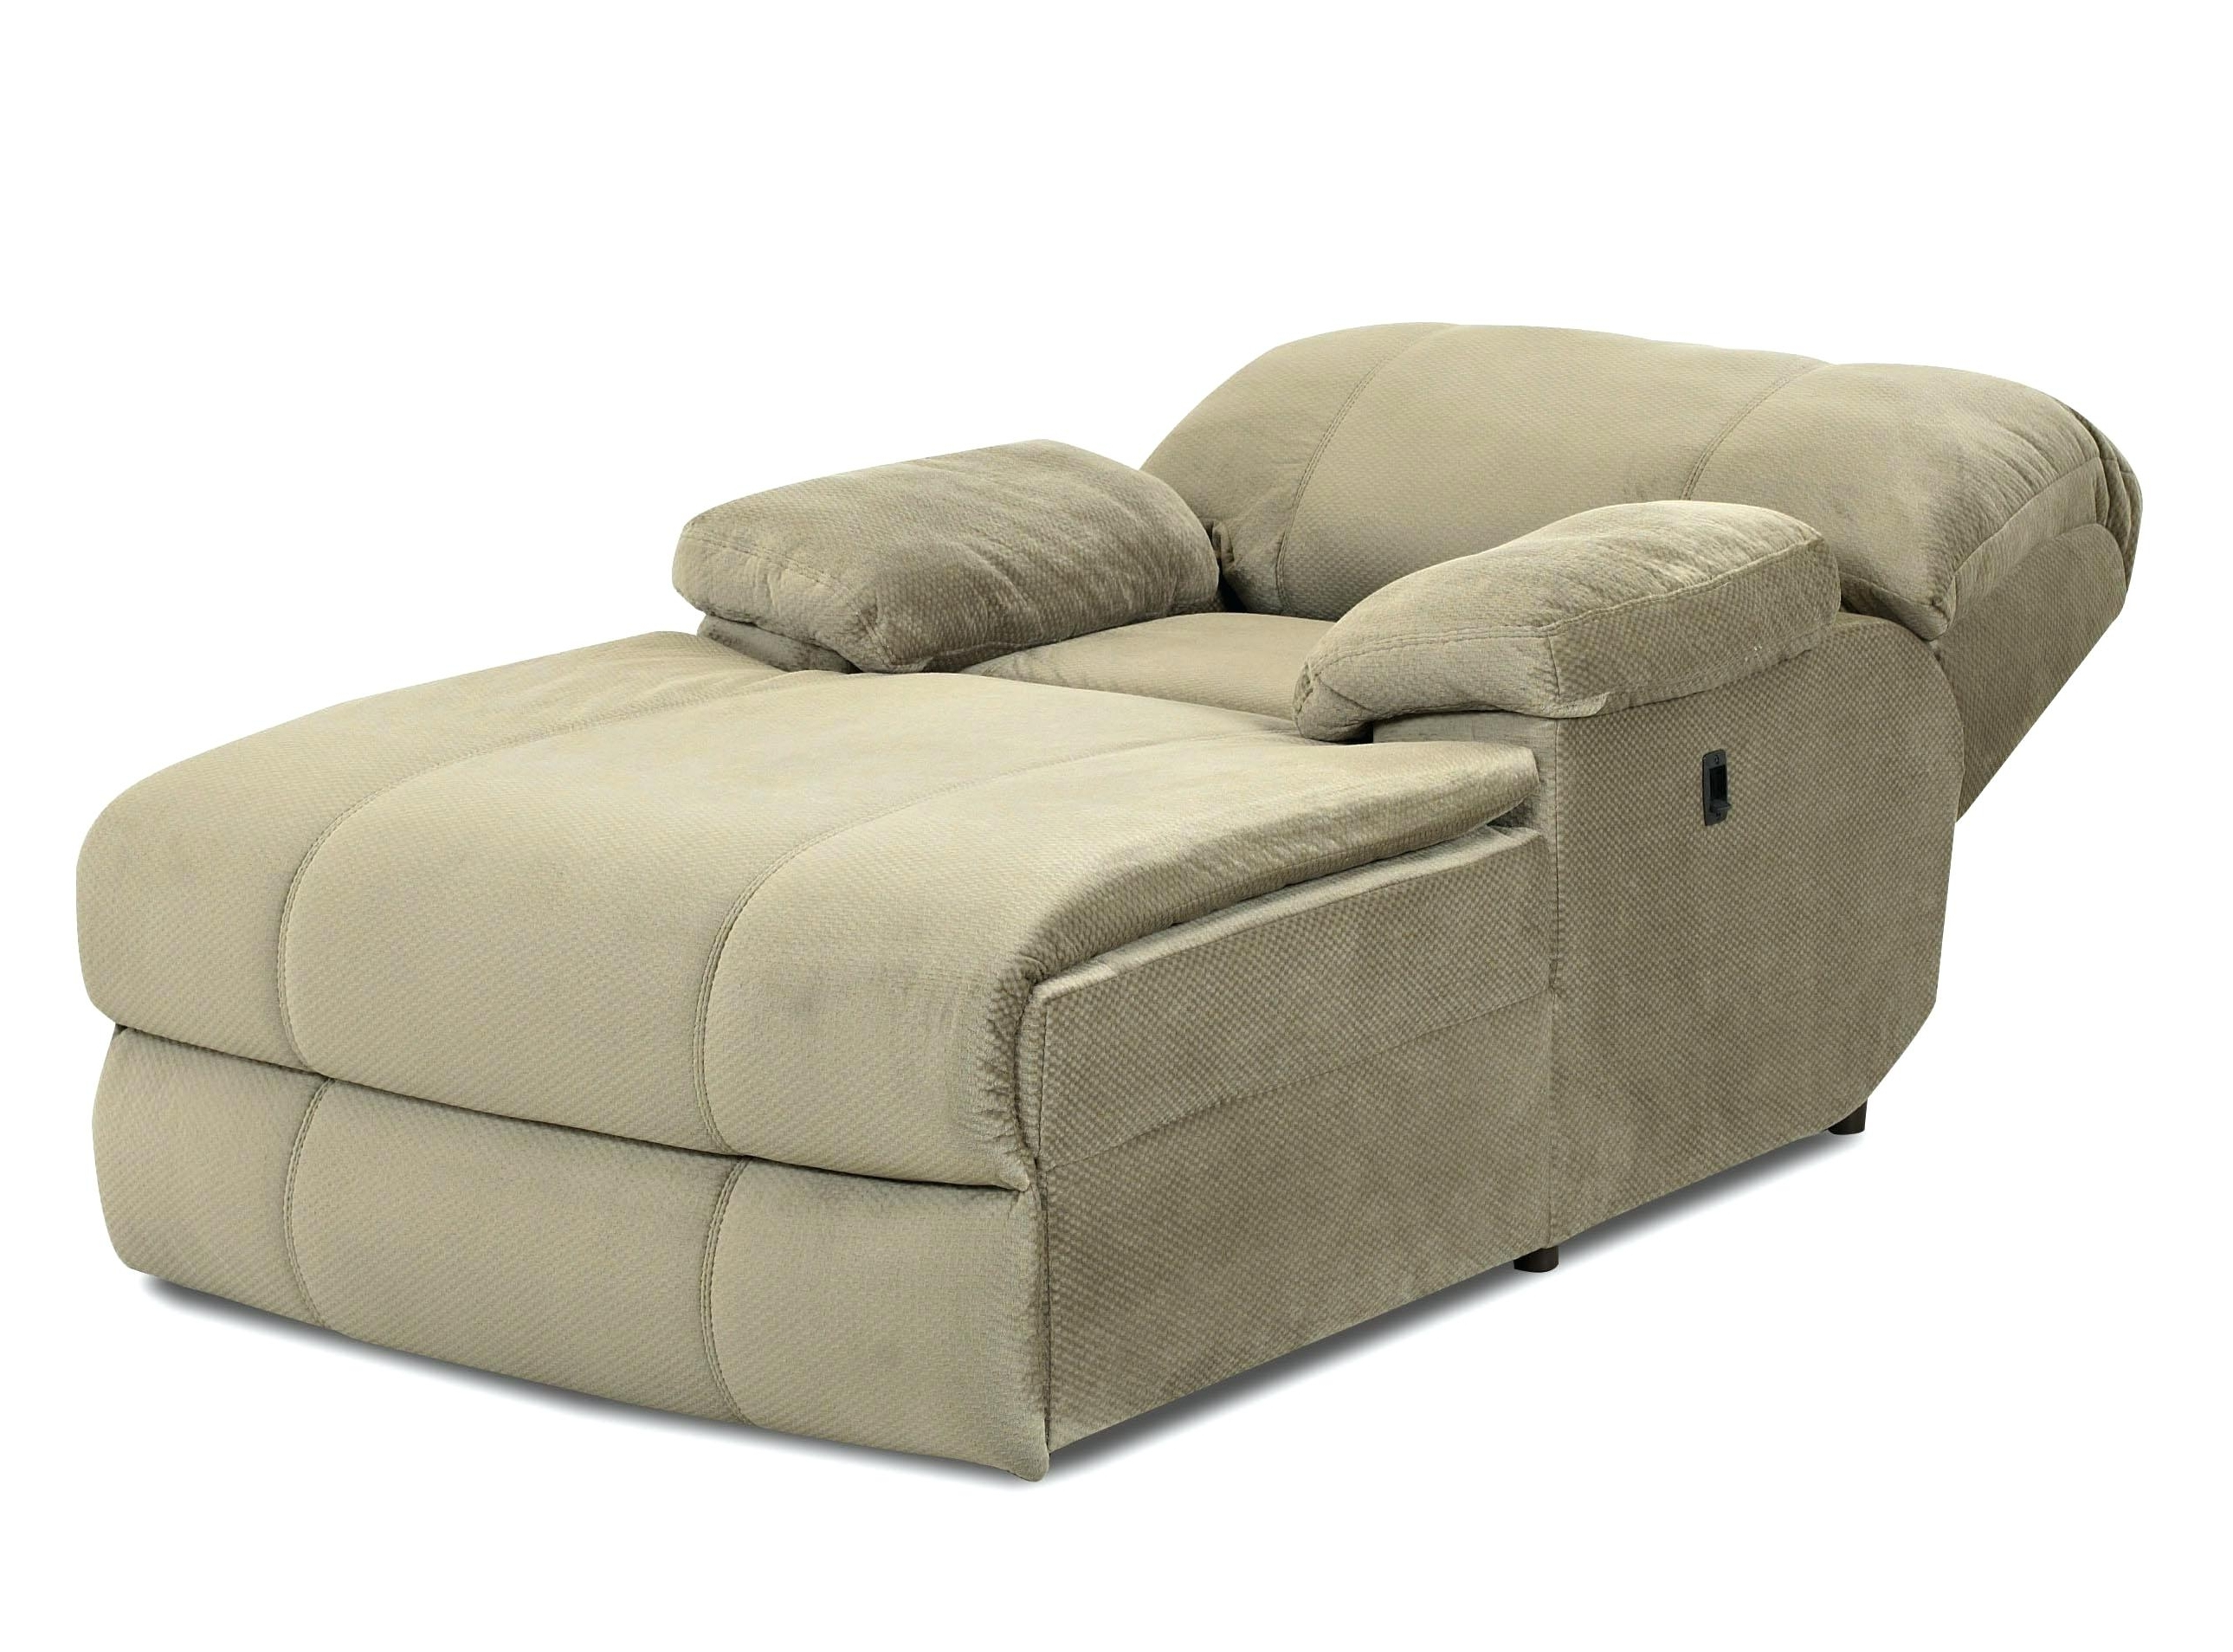 Chaise Lounge Chairs With Arms Slipcover Pertaining To Most Up To Date Chaise Lounge Chair With Arms Indoor • Lounge Chairs Ideas (View 14 of 15)